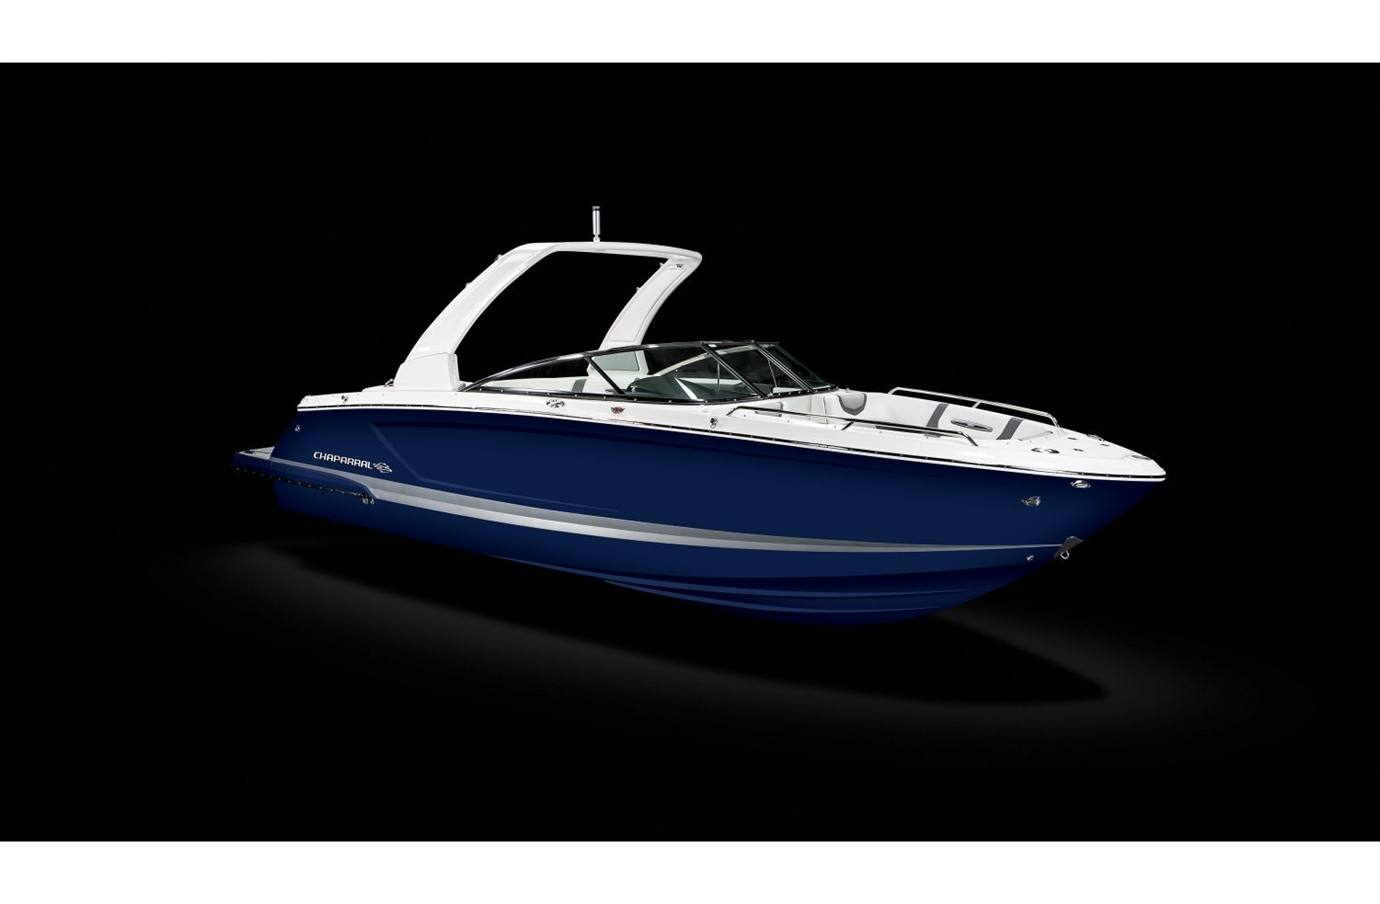 2020 Chaparral 277 SSX for sale in Colchester, VT  Saba